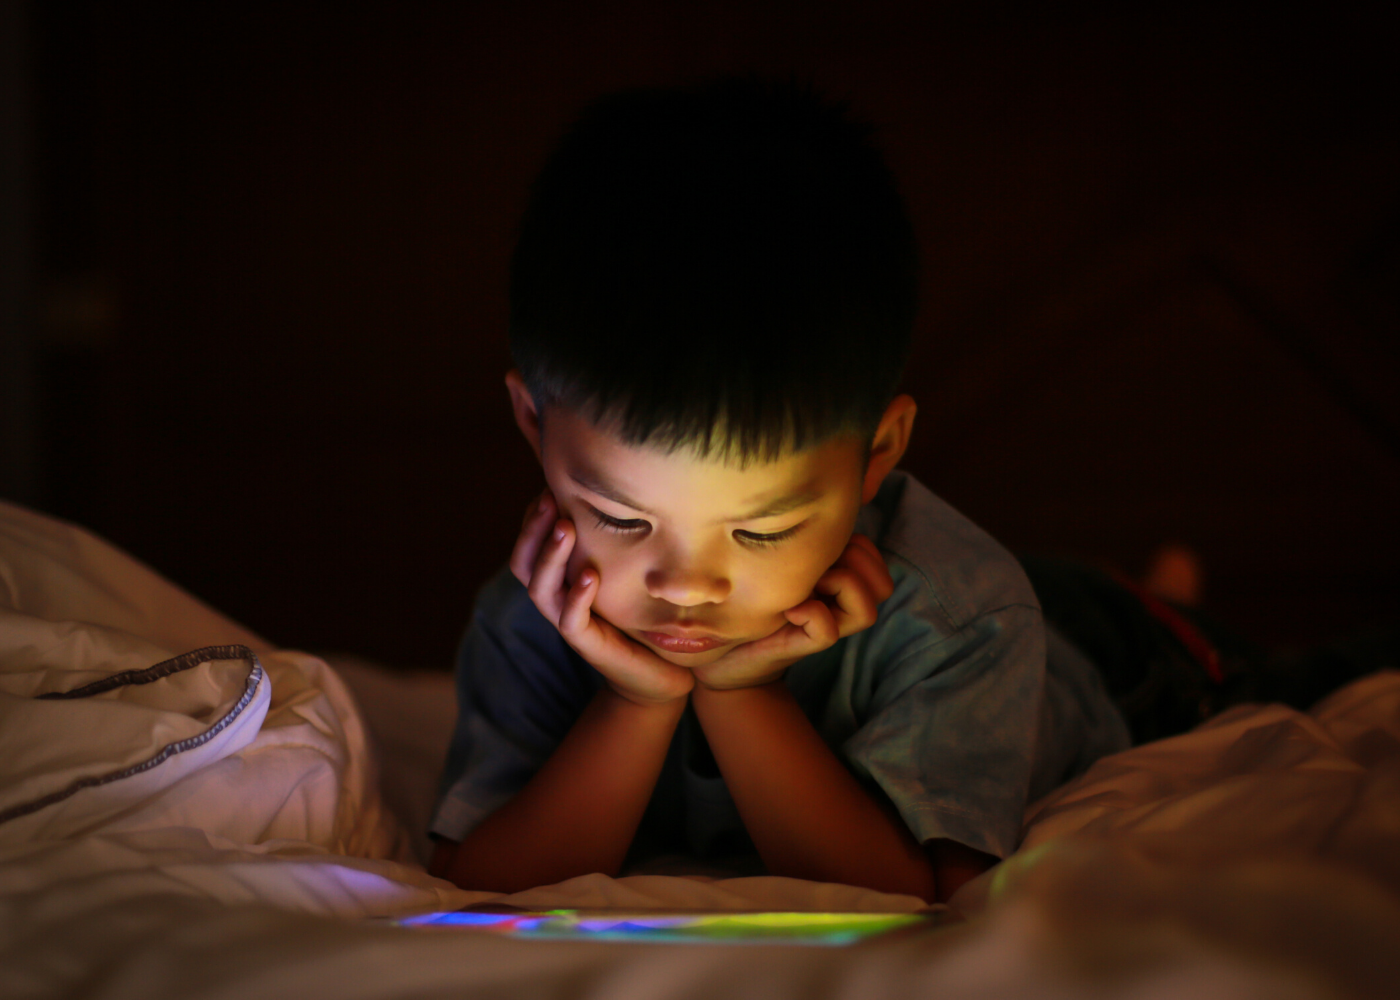 Worried about the effects of prolonged screen time on your kids' eyes? Read this.